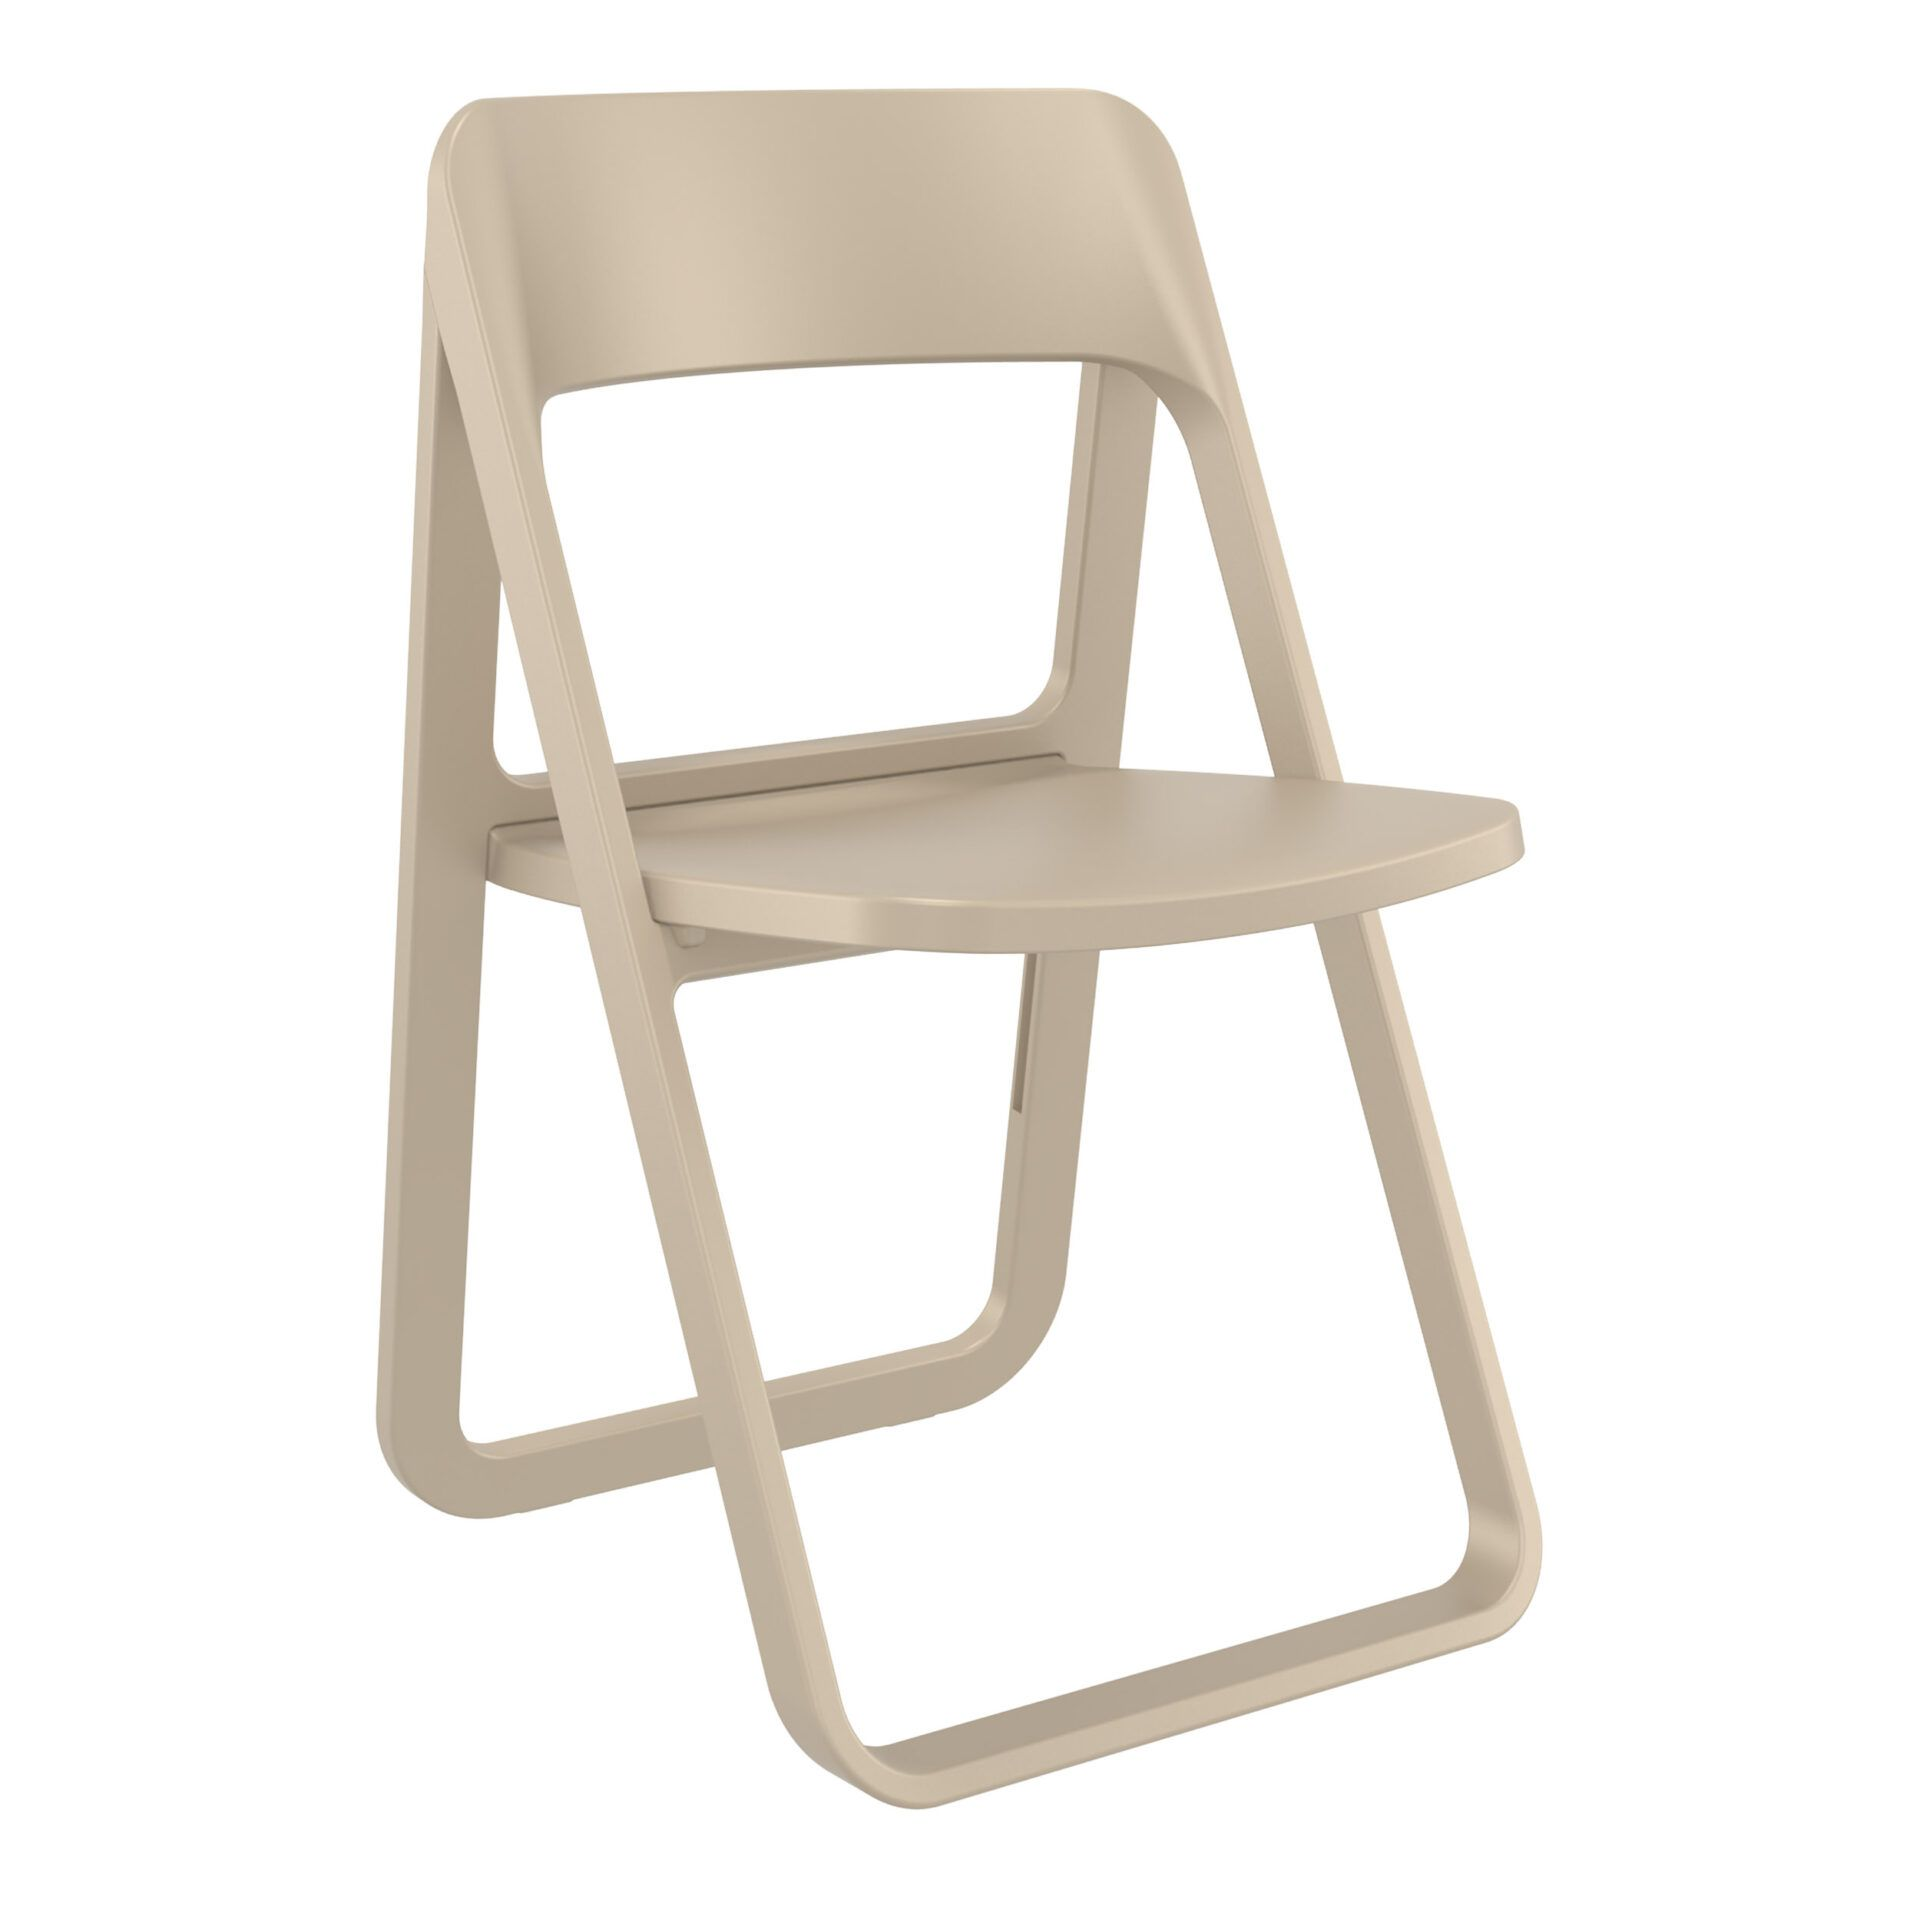 polypropylene dream folding chair taupe front side